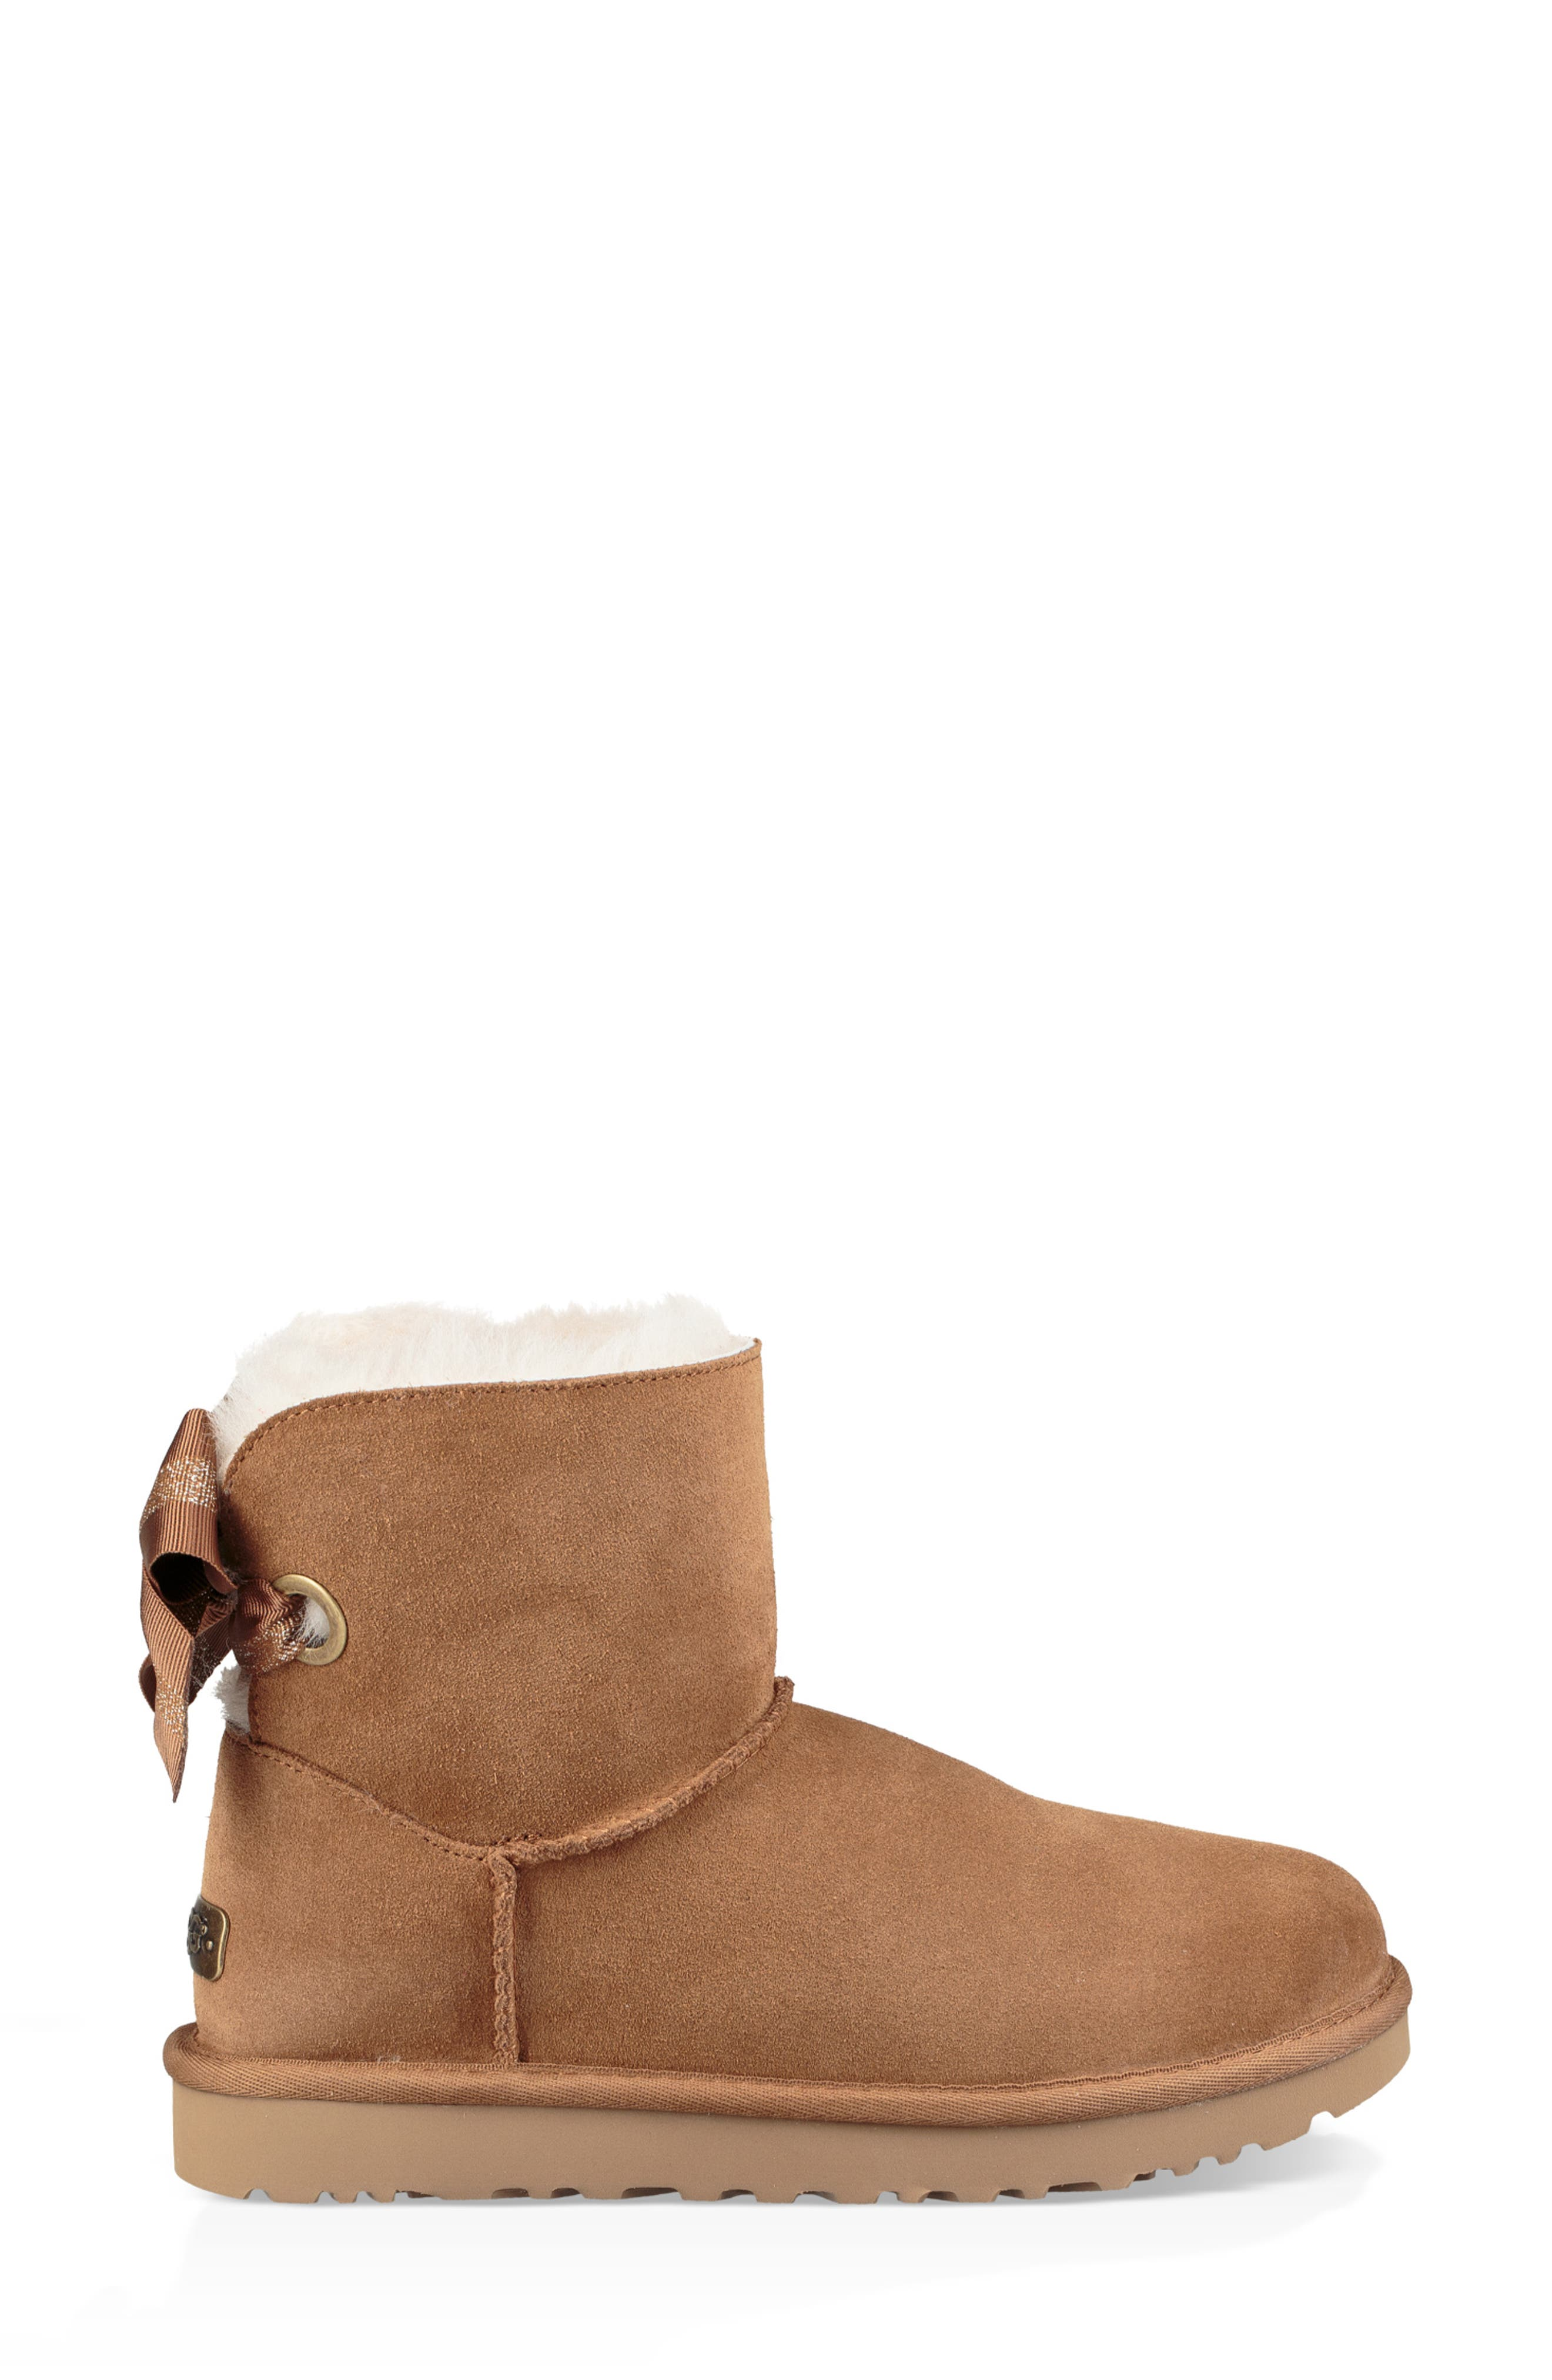 Customizable Bailey Bow Mini Genuine Shearling Bootie,                             Alternate thumbnail 3, color,                             CHESTNUT SUEDE